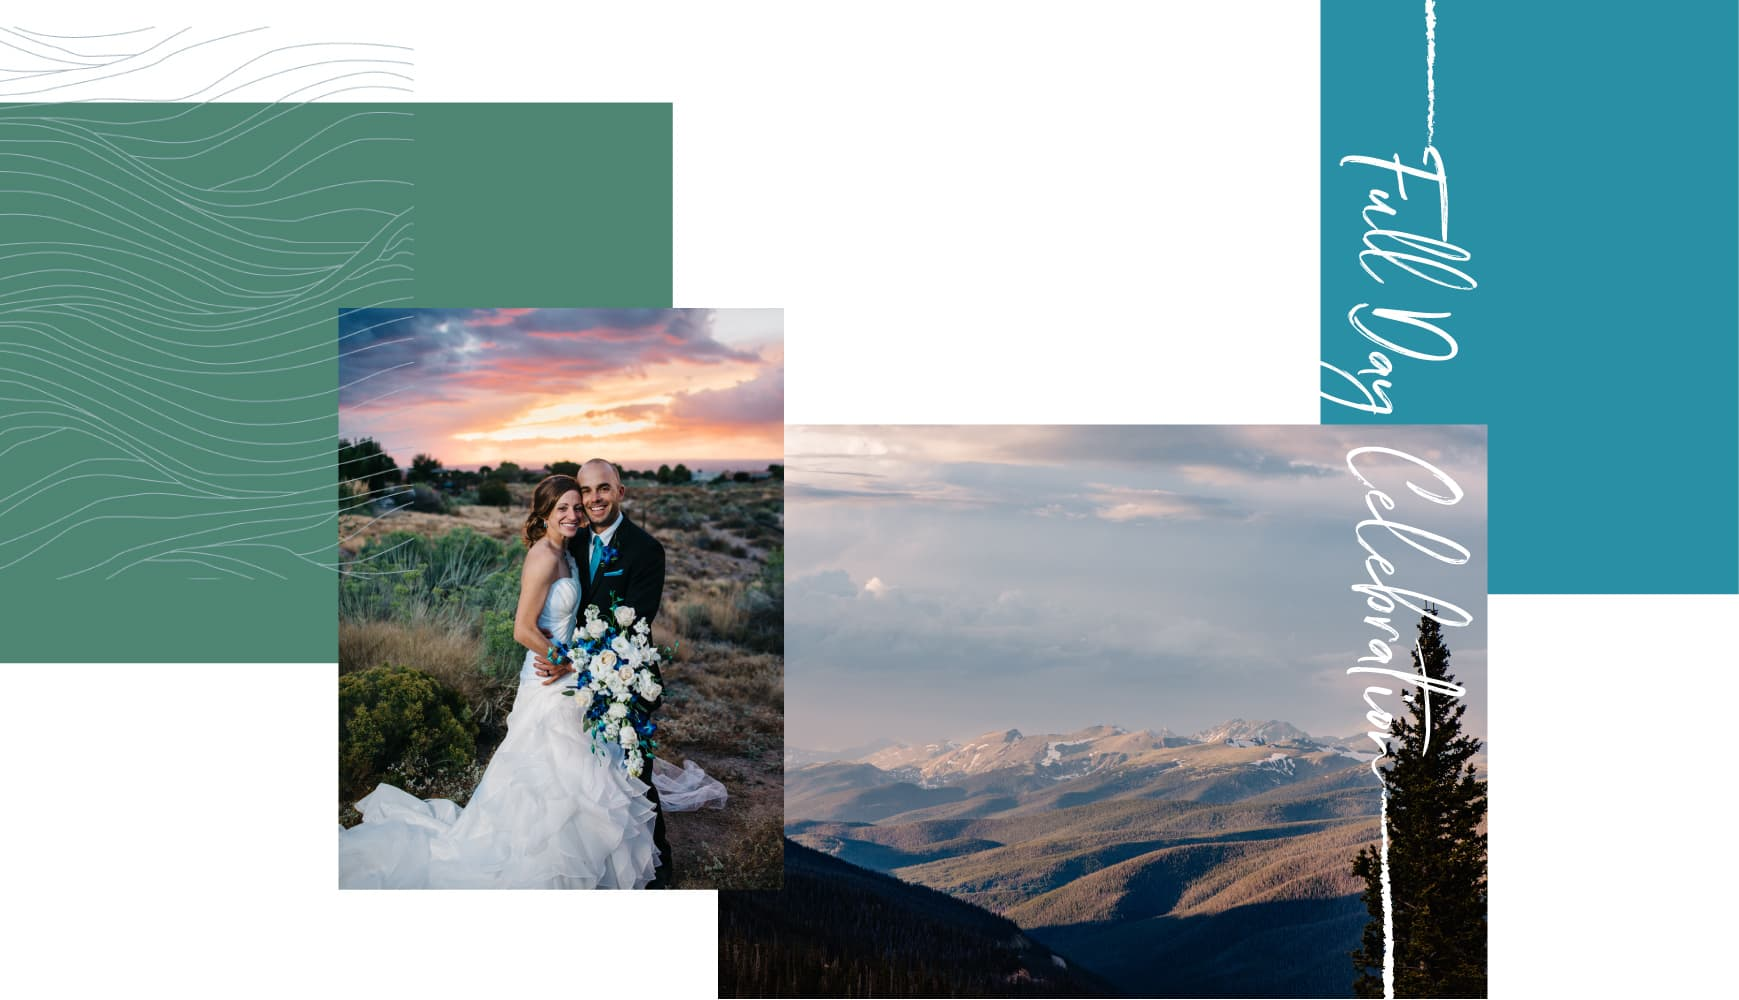 couple smiling at camera at sunset, view of mountains at sunset text: fully day celebration